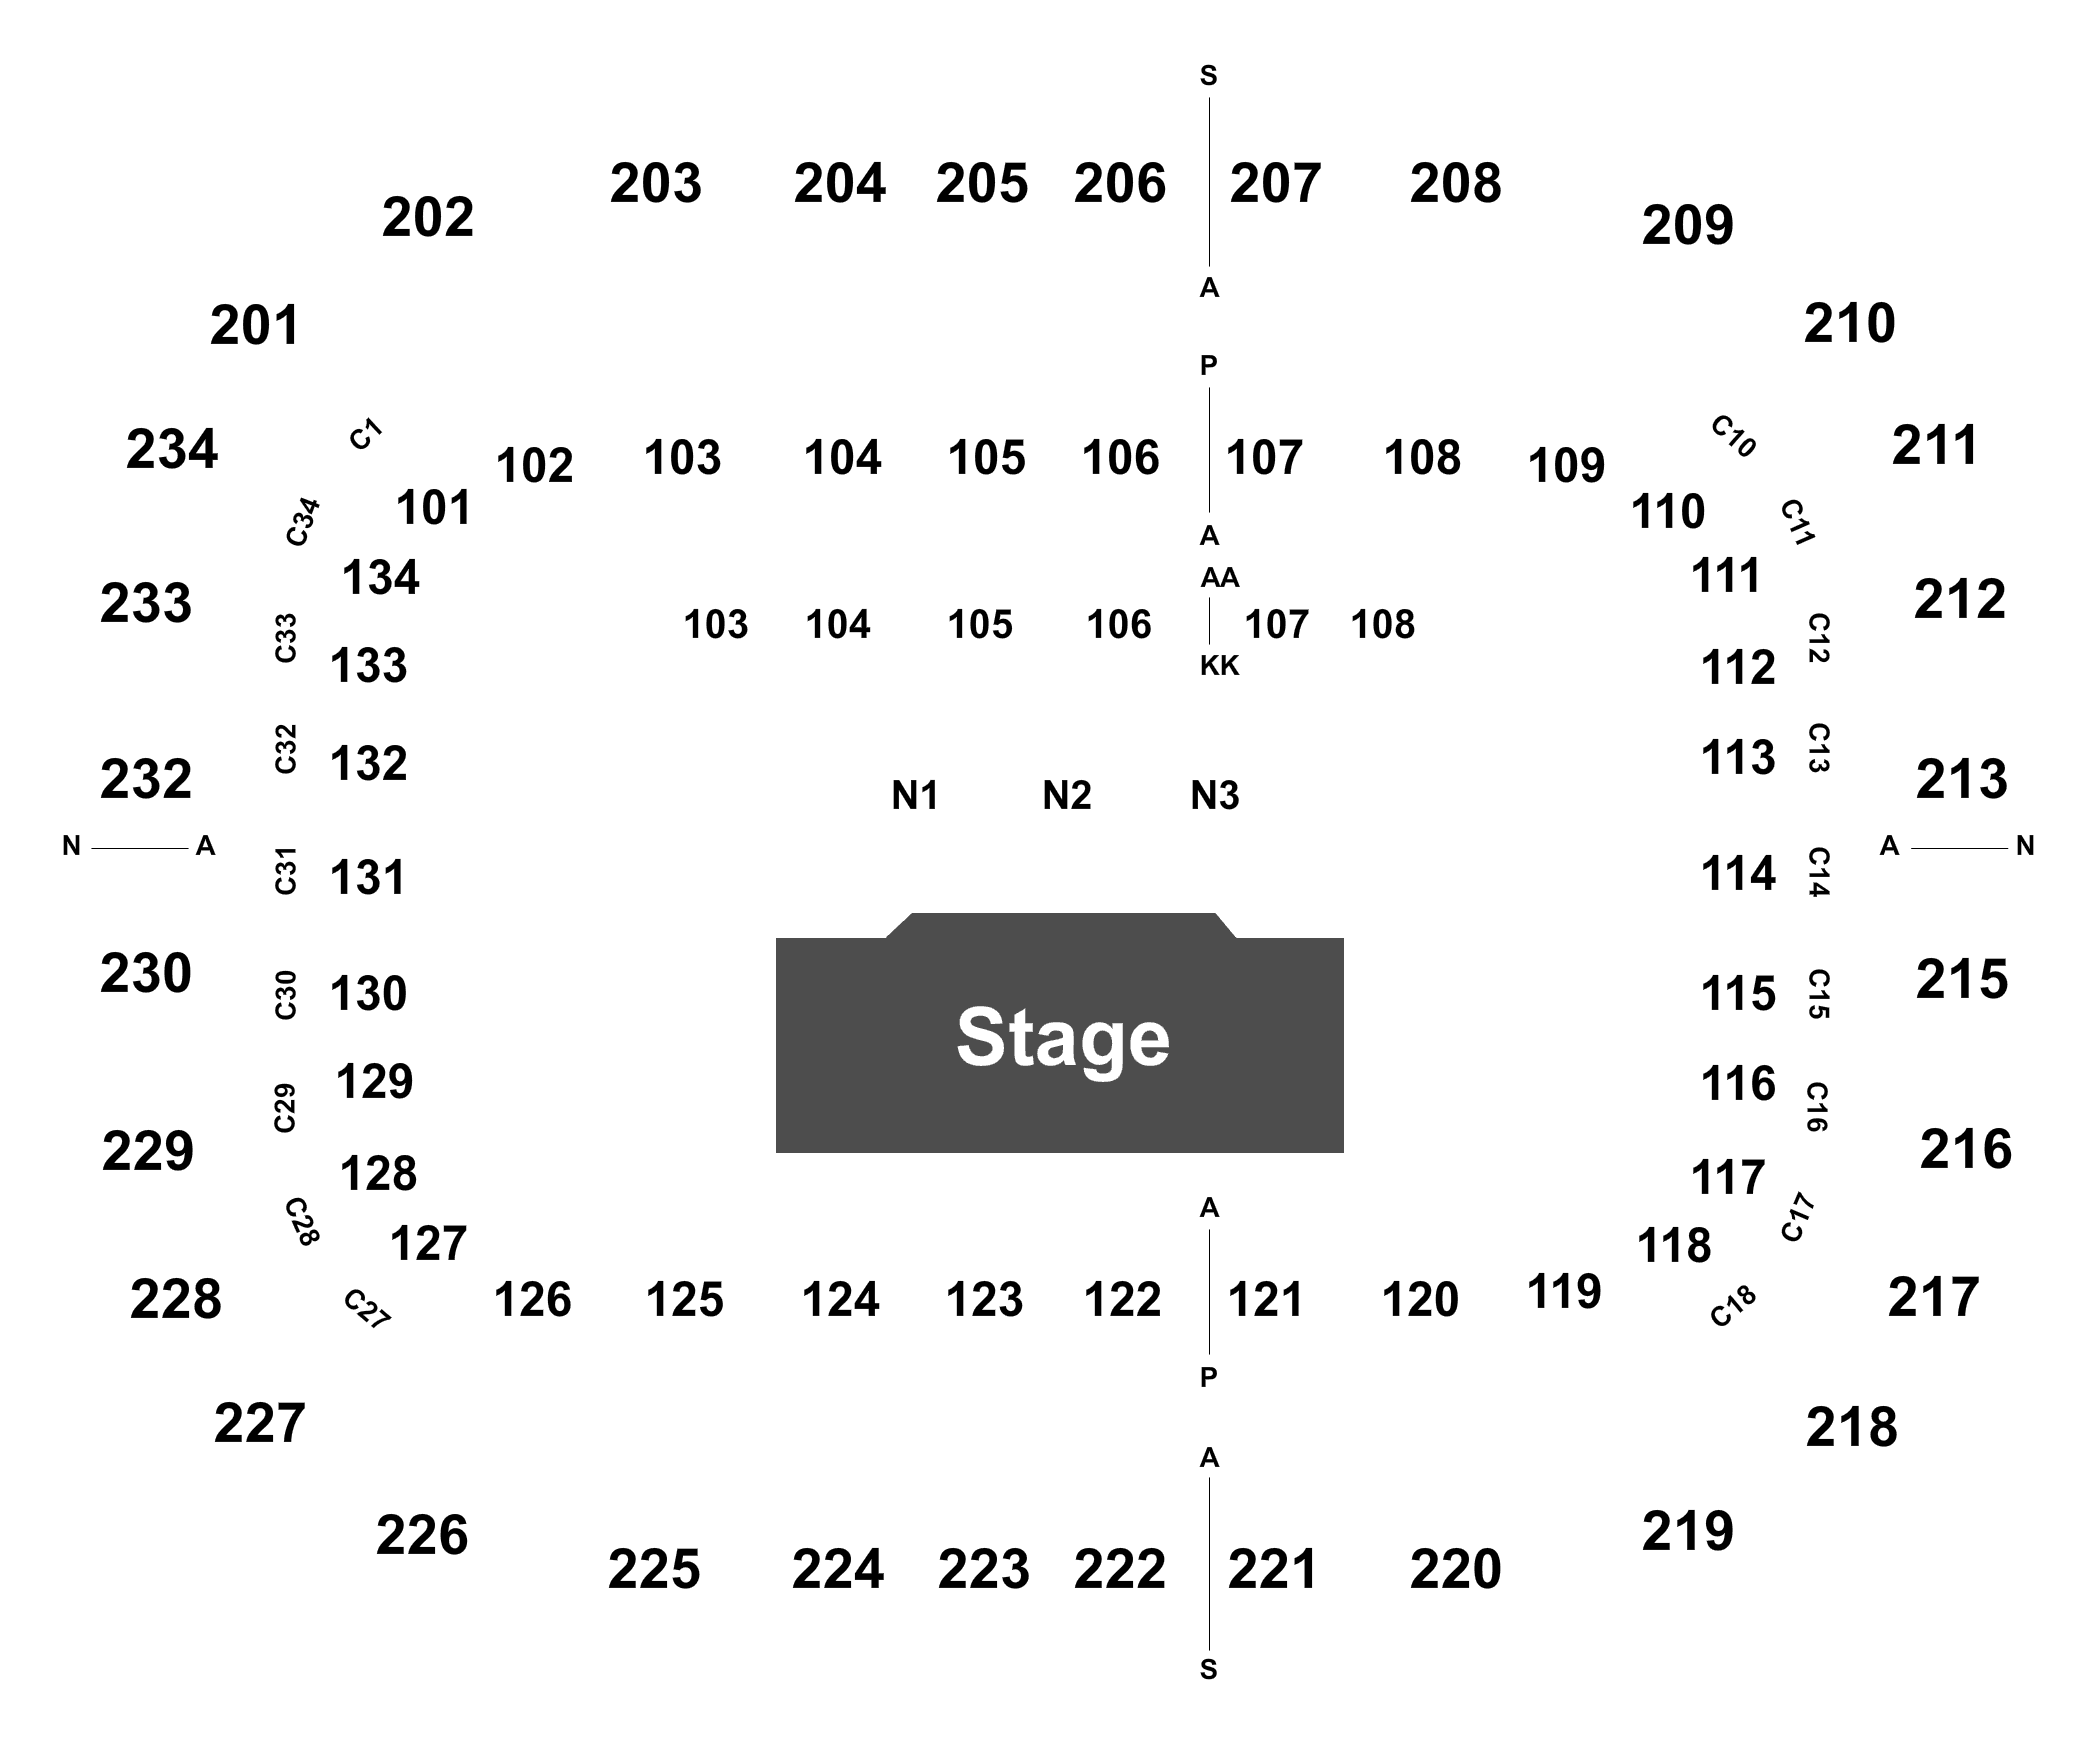 Jeff Dunham Tickets Fri, Oct 25, 2019 7:00 pm at Bryce ... on map of arco arena, map of van andel arena, map of seven springs mountain resort, map of fitzgerald theater, map of verizon wireless arena, map of la sports arena, map of mgm grand garden arena, map of york fair, map of burton coliseum, map of germain arena, map of ppl park, map of john paul jones arena, map of bramlage coliseum, map of pinnacle bank arena, map of time warner cable arena, map of value city arena, map of blue cross arena, map of delaware state fair, map of matthew knight arena, map of first niagara pavilion,